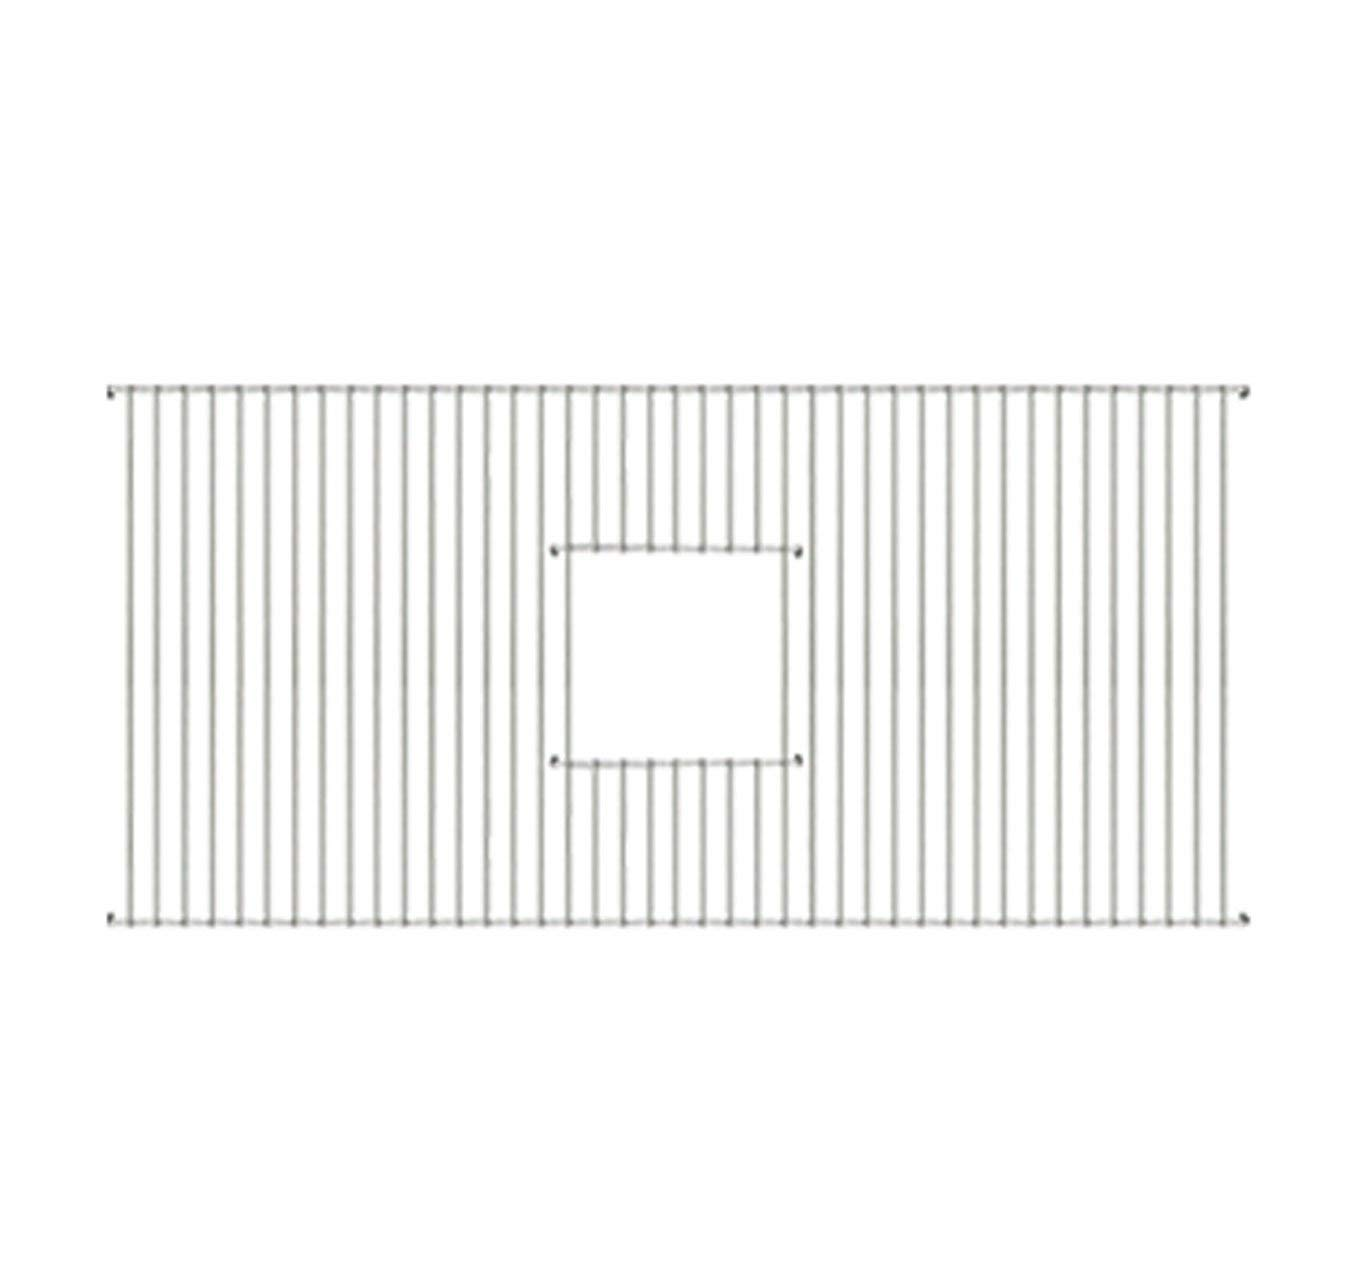 Stainless Steel Kitchen Grid for Whitehaus Collection Sink (Renewed)